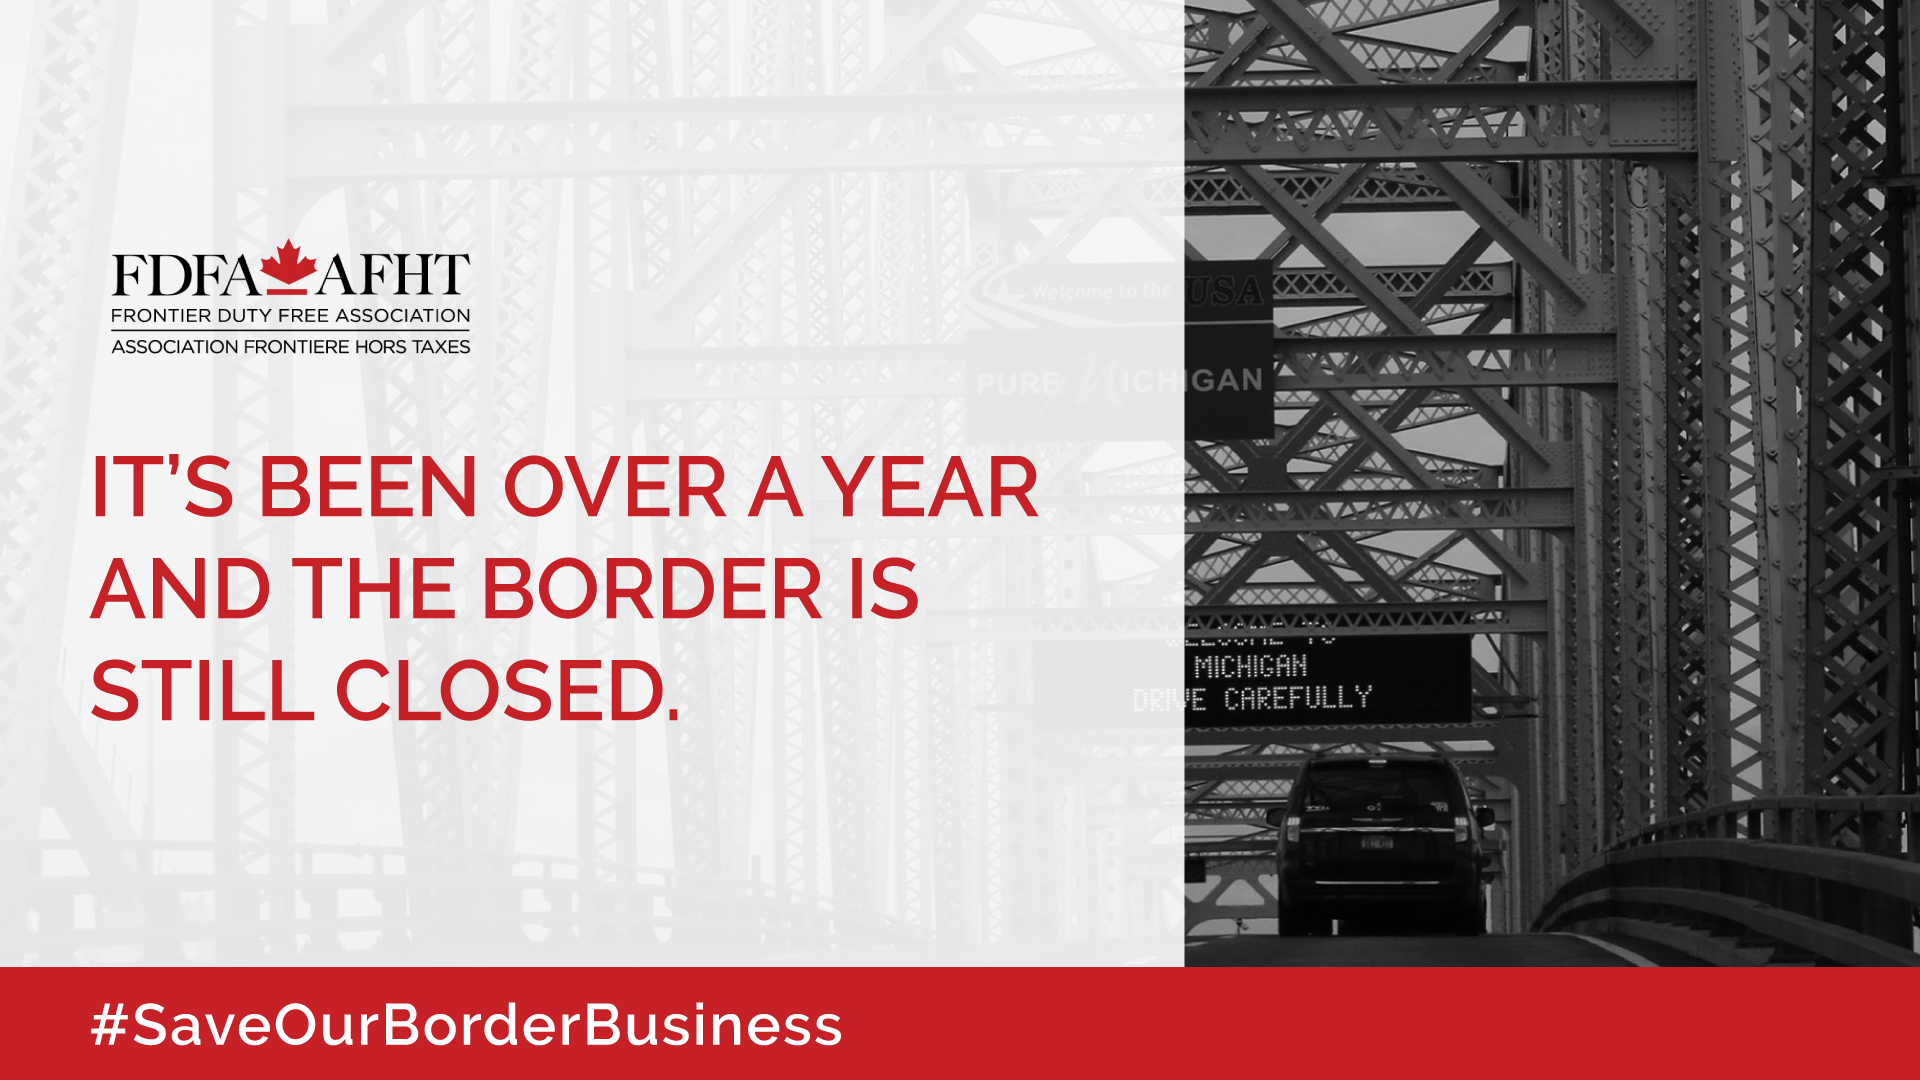 PRESS RELEASE: MPs across party lines call for support for Duty Free businesses on Canada-U.S. border